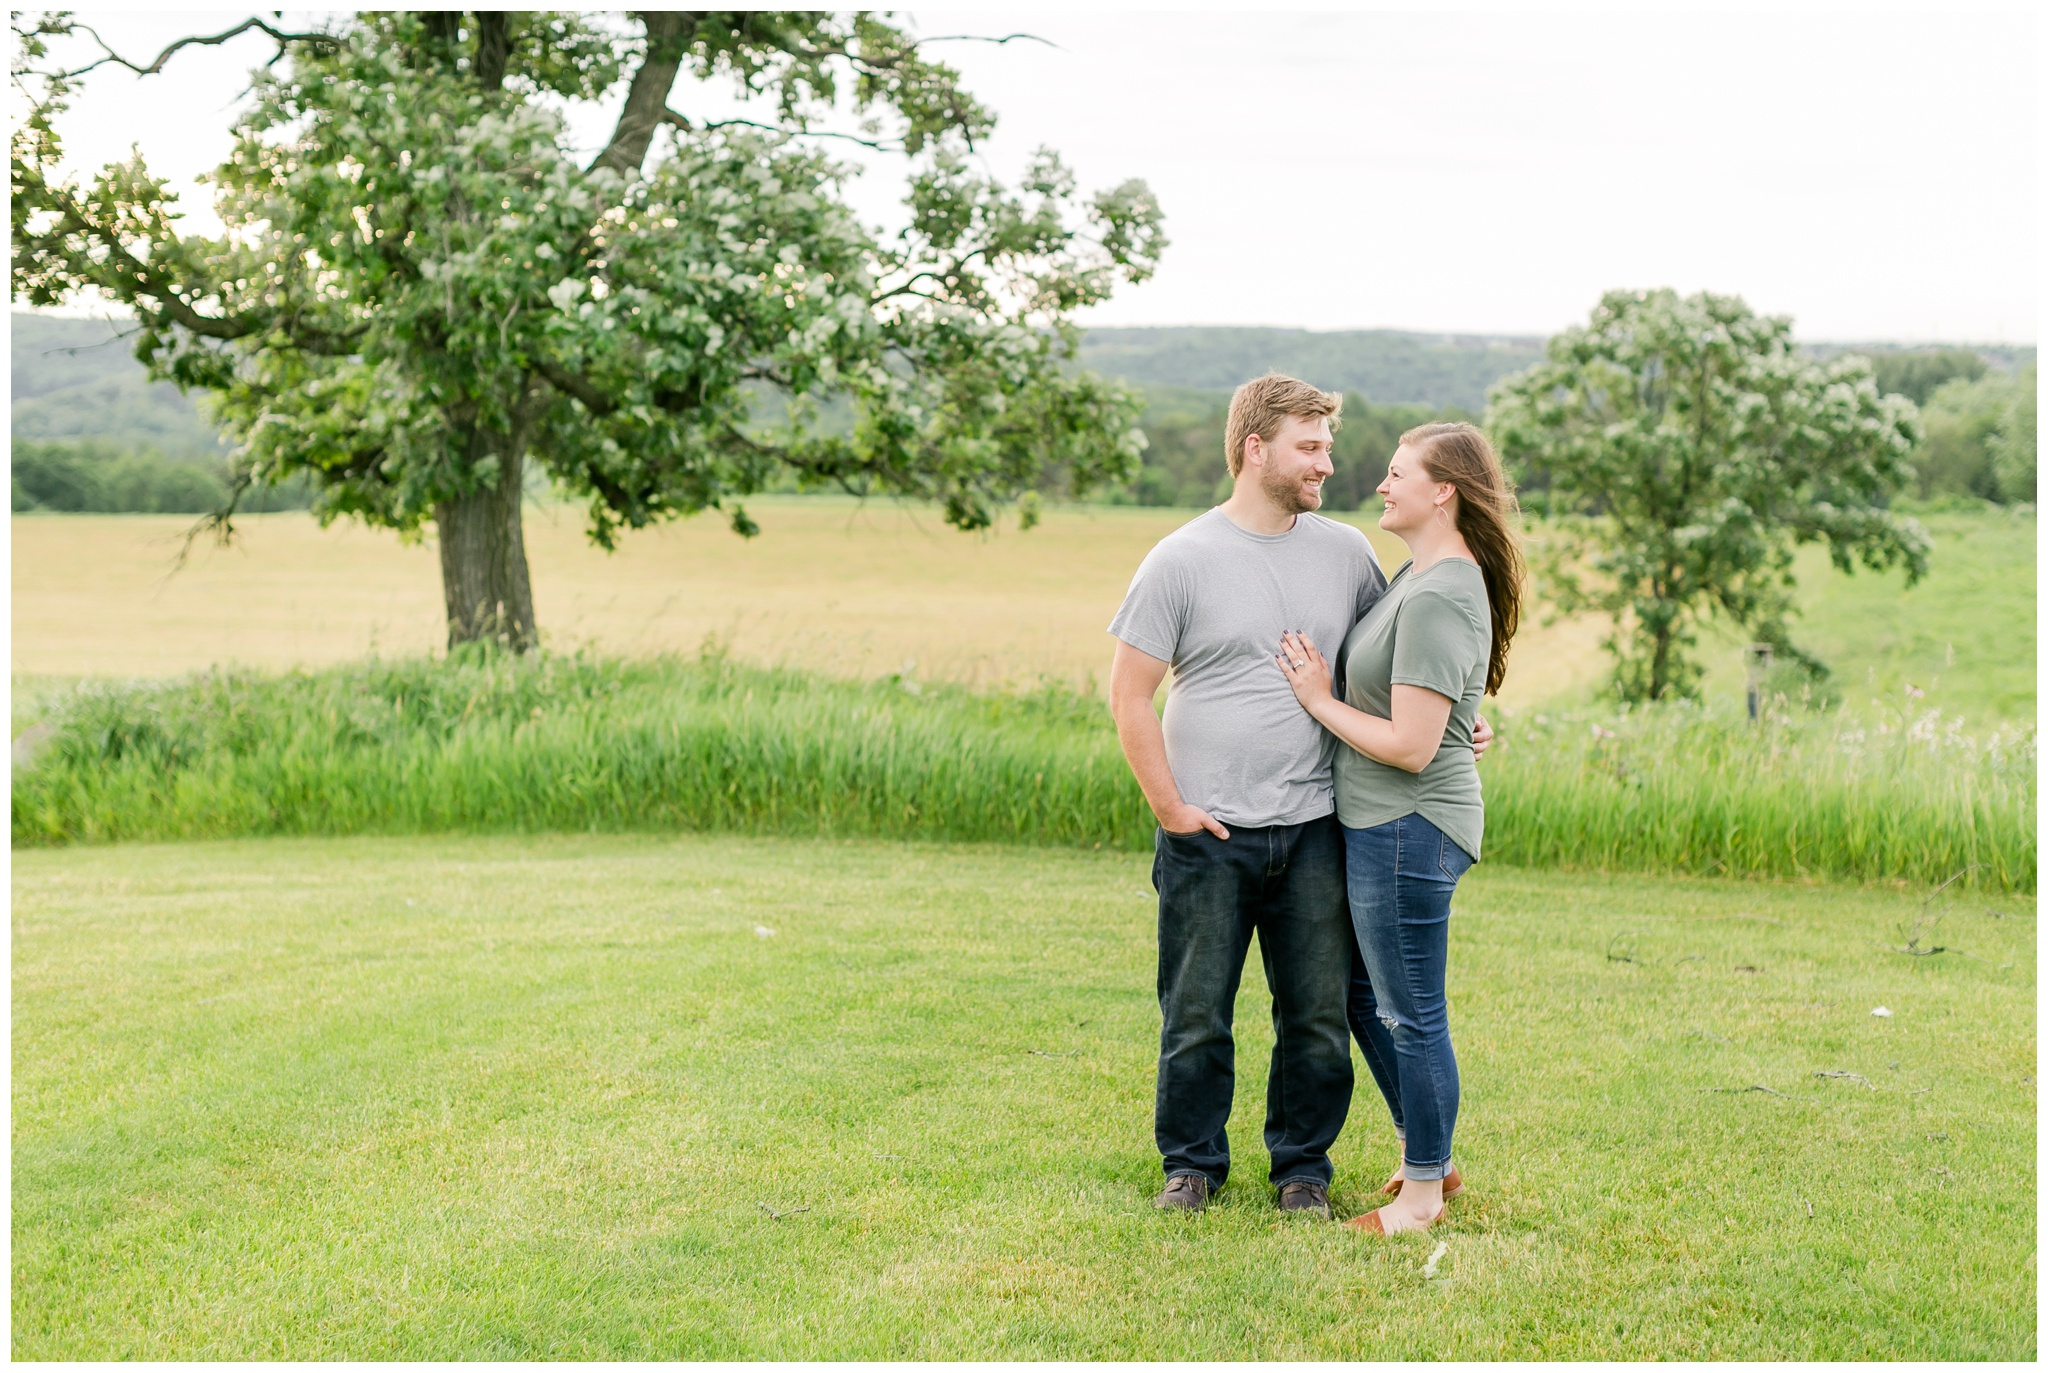 pope_farm_conservancy_engagement_session_madison_wisconsin_engagement_photographers_4142.jpg